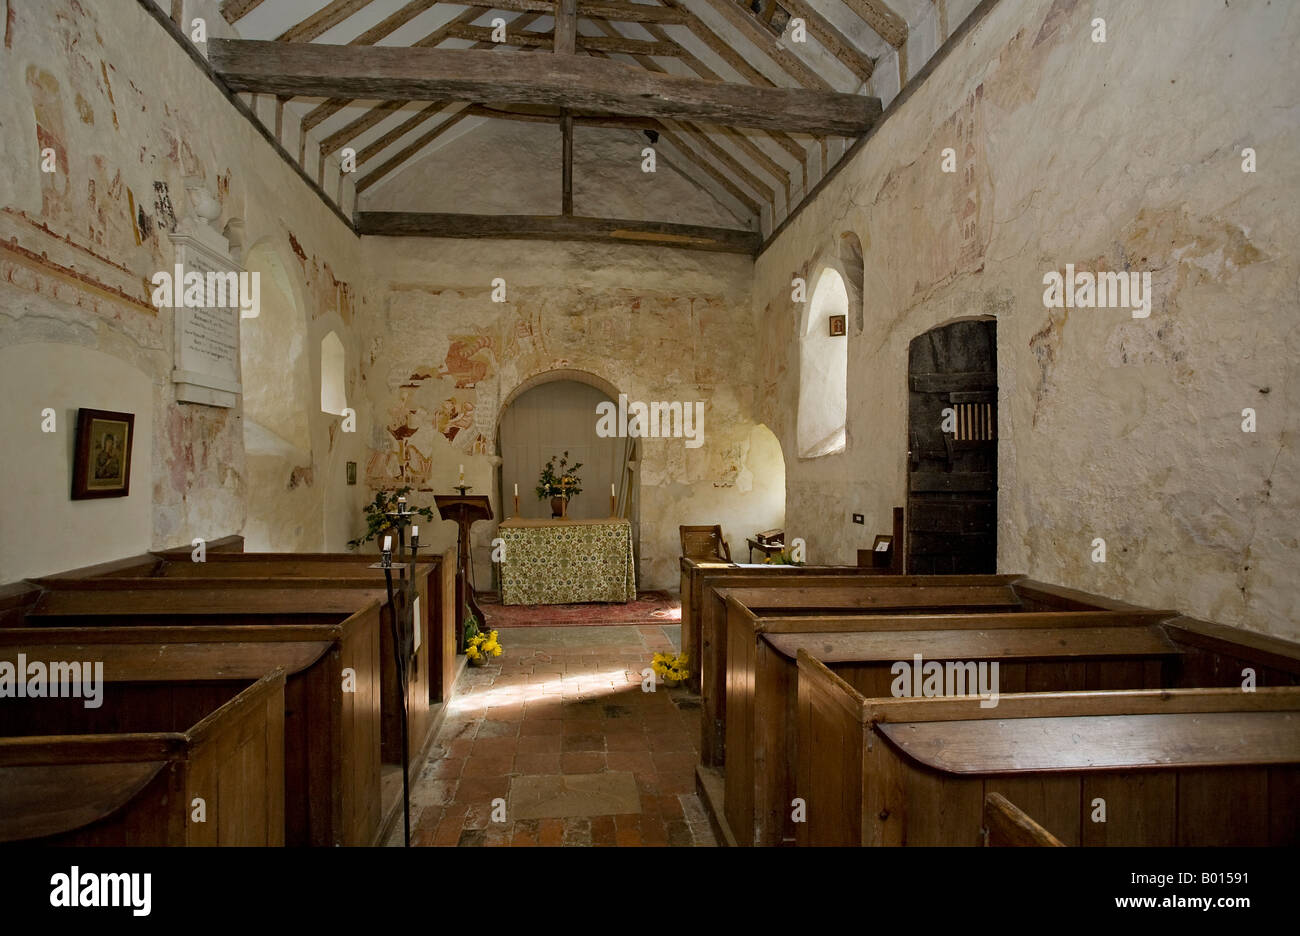 Coombes Church, Sussex, England, UK - Stock Image